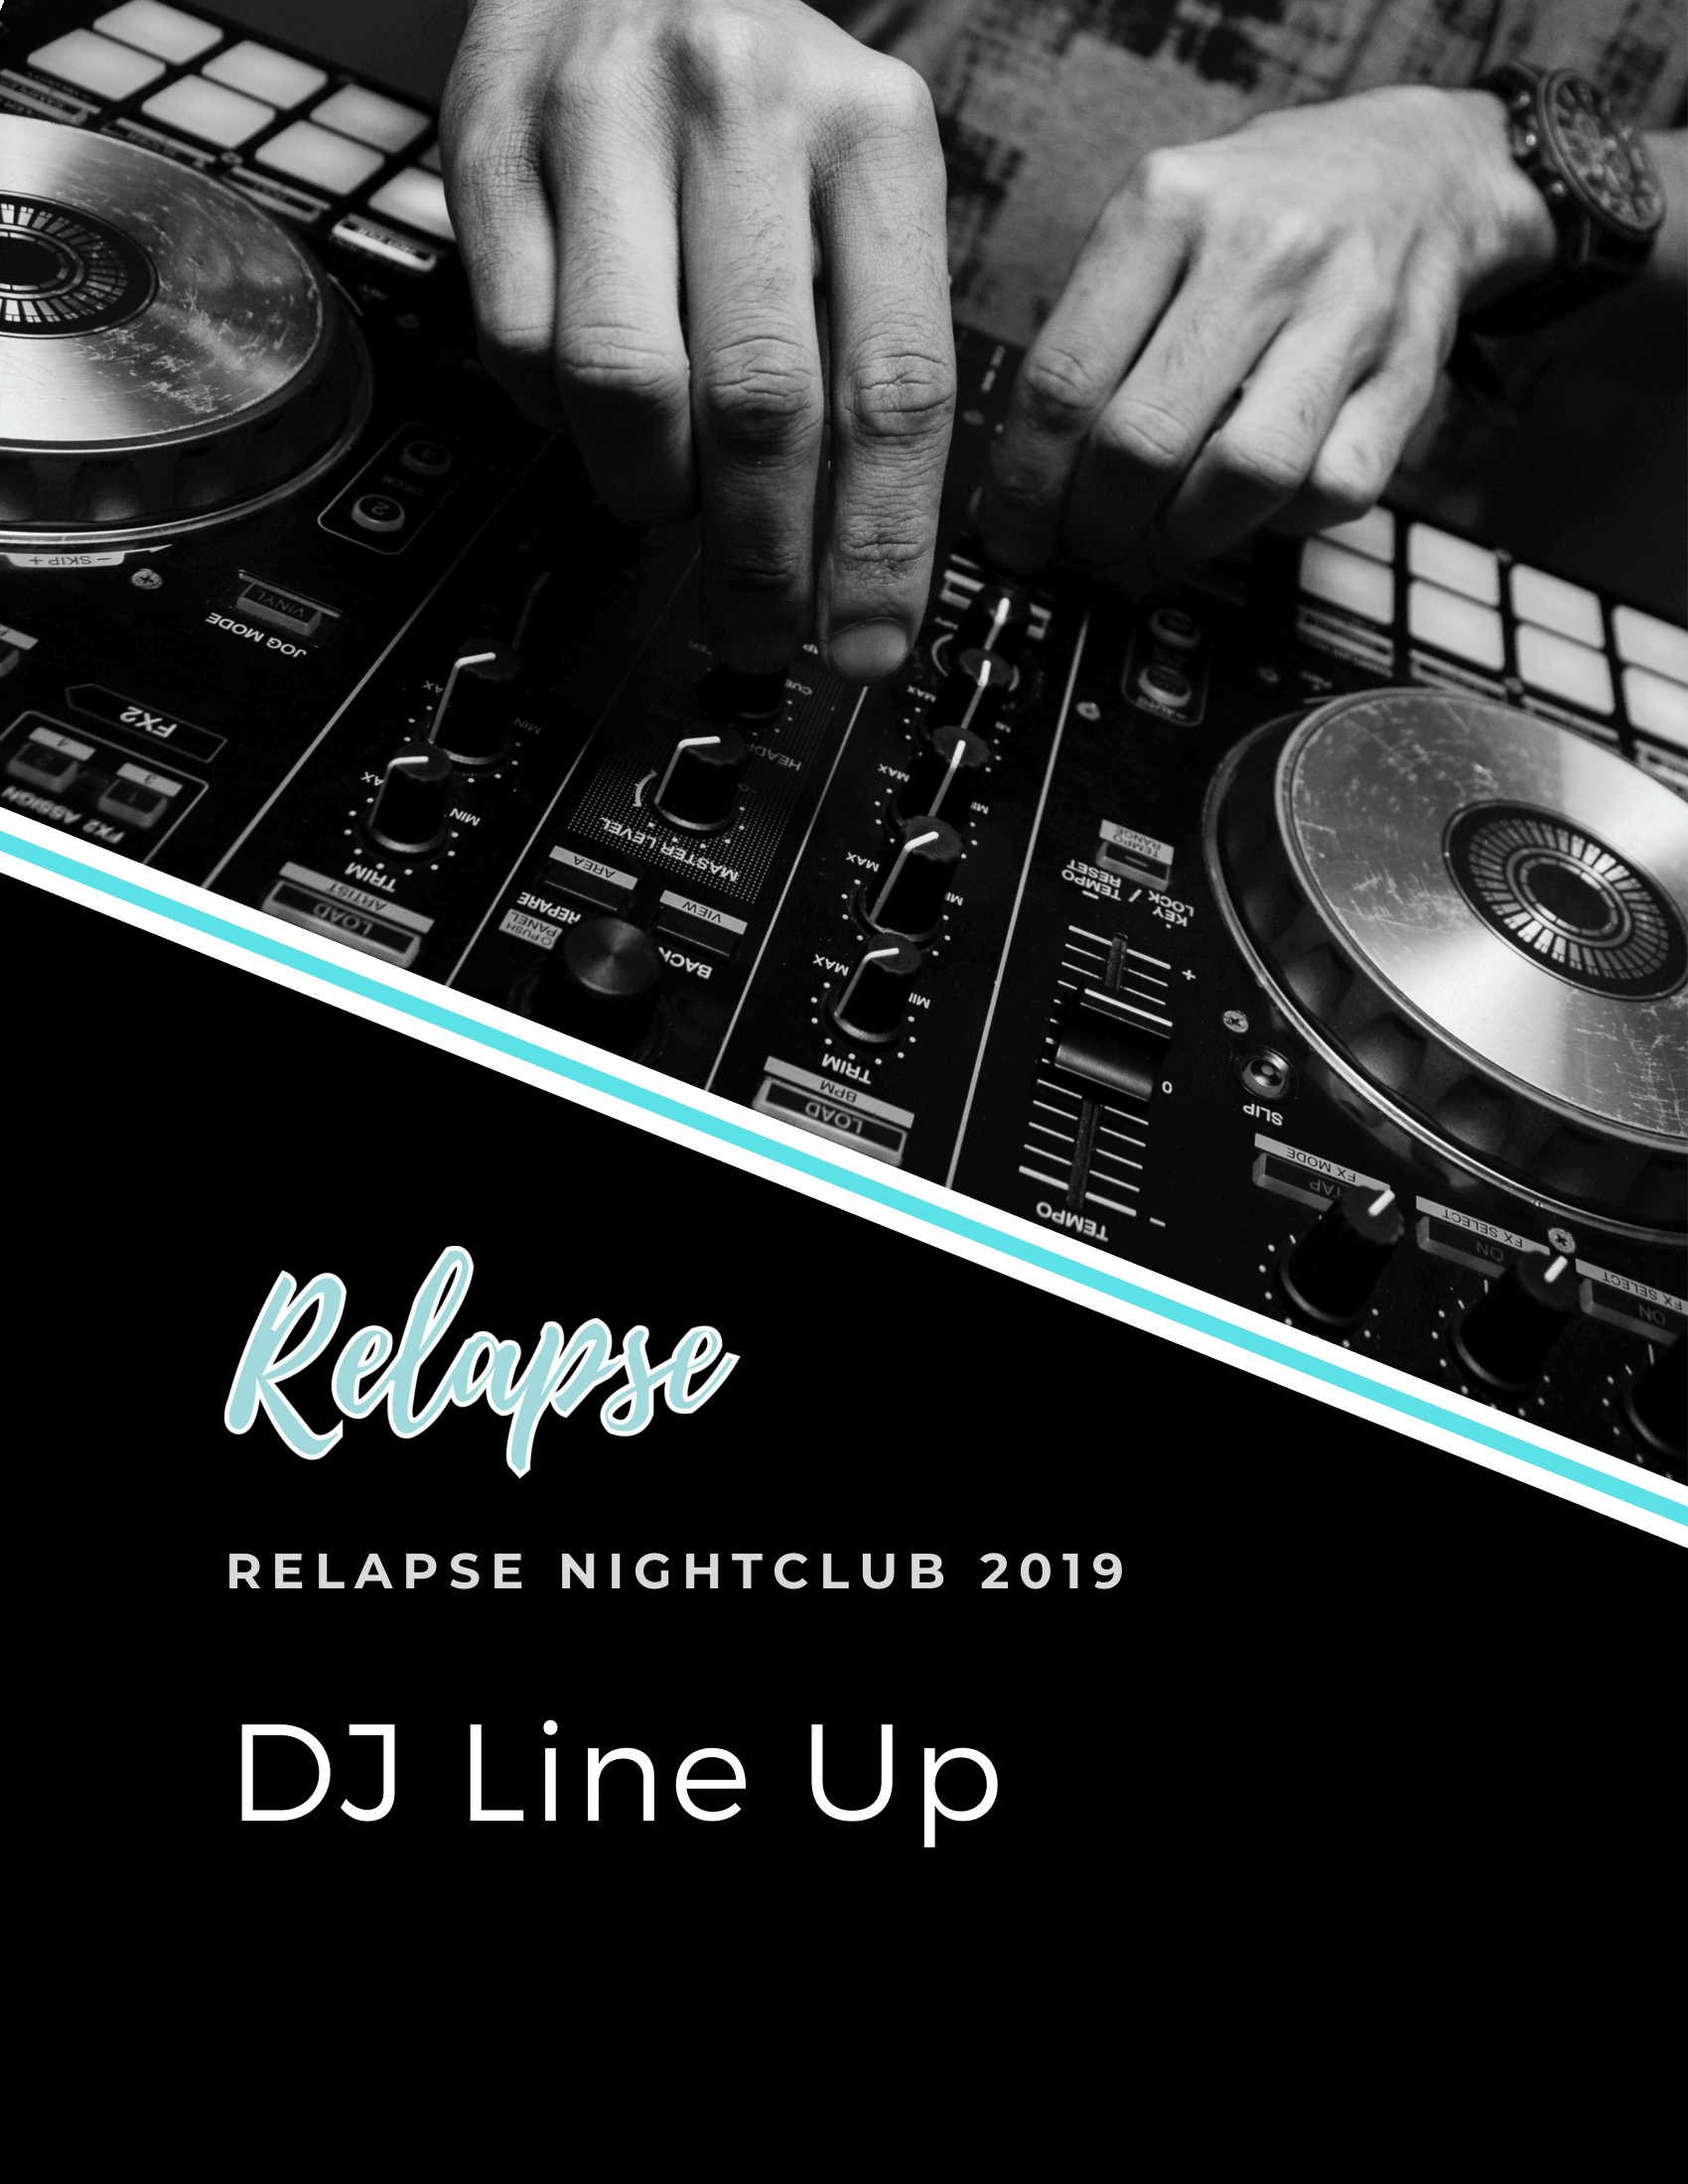 Relapse_DJ Line Up (1)-1